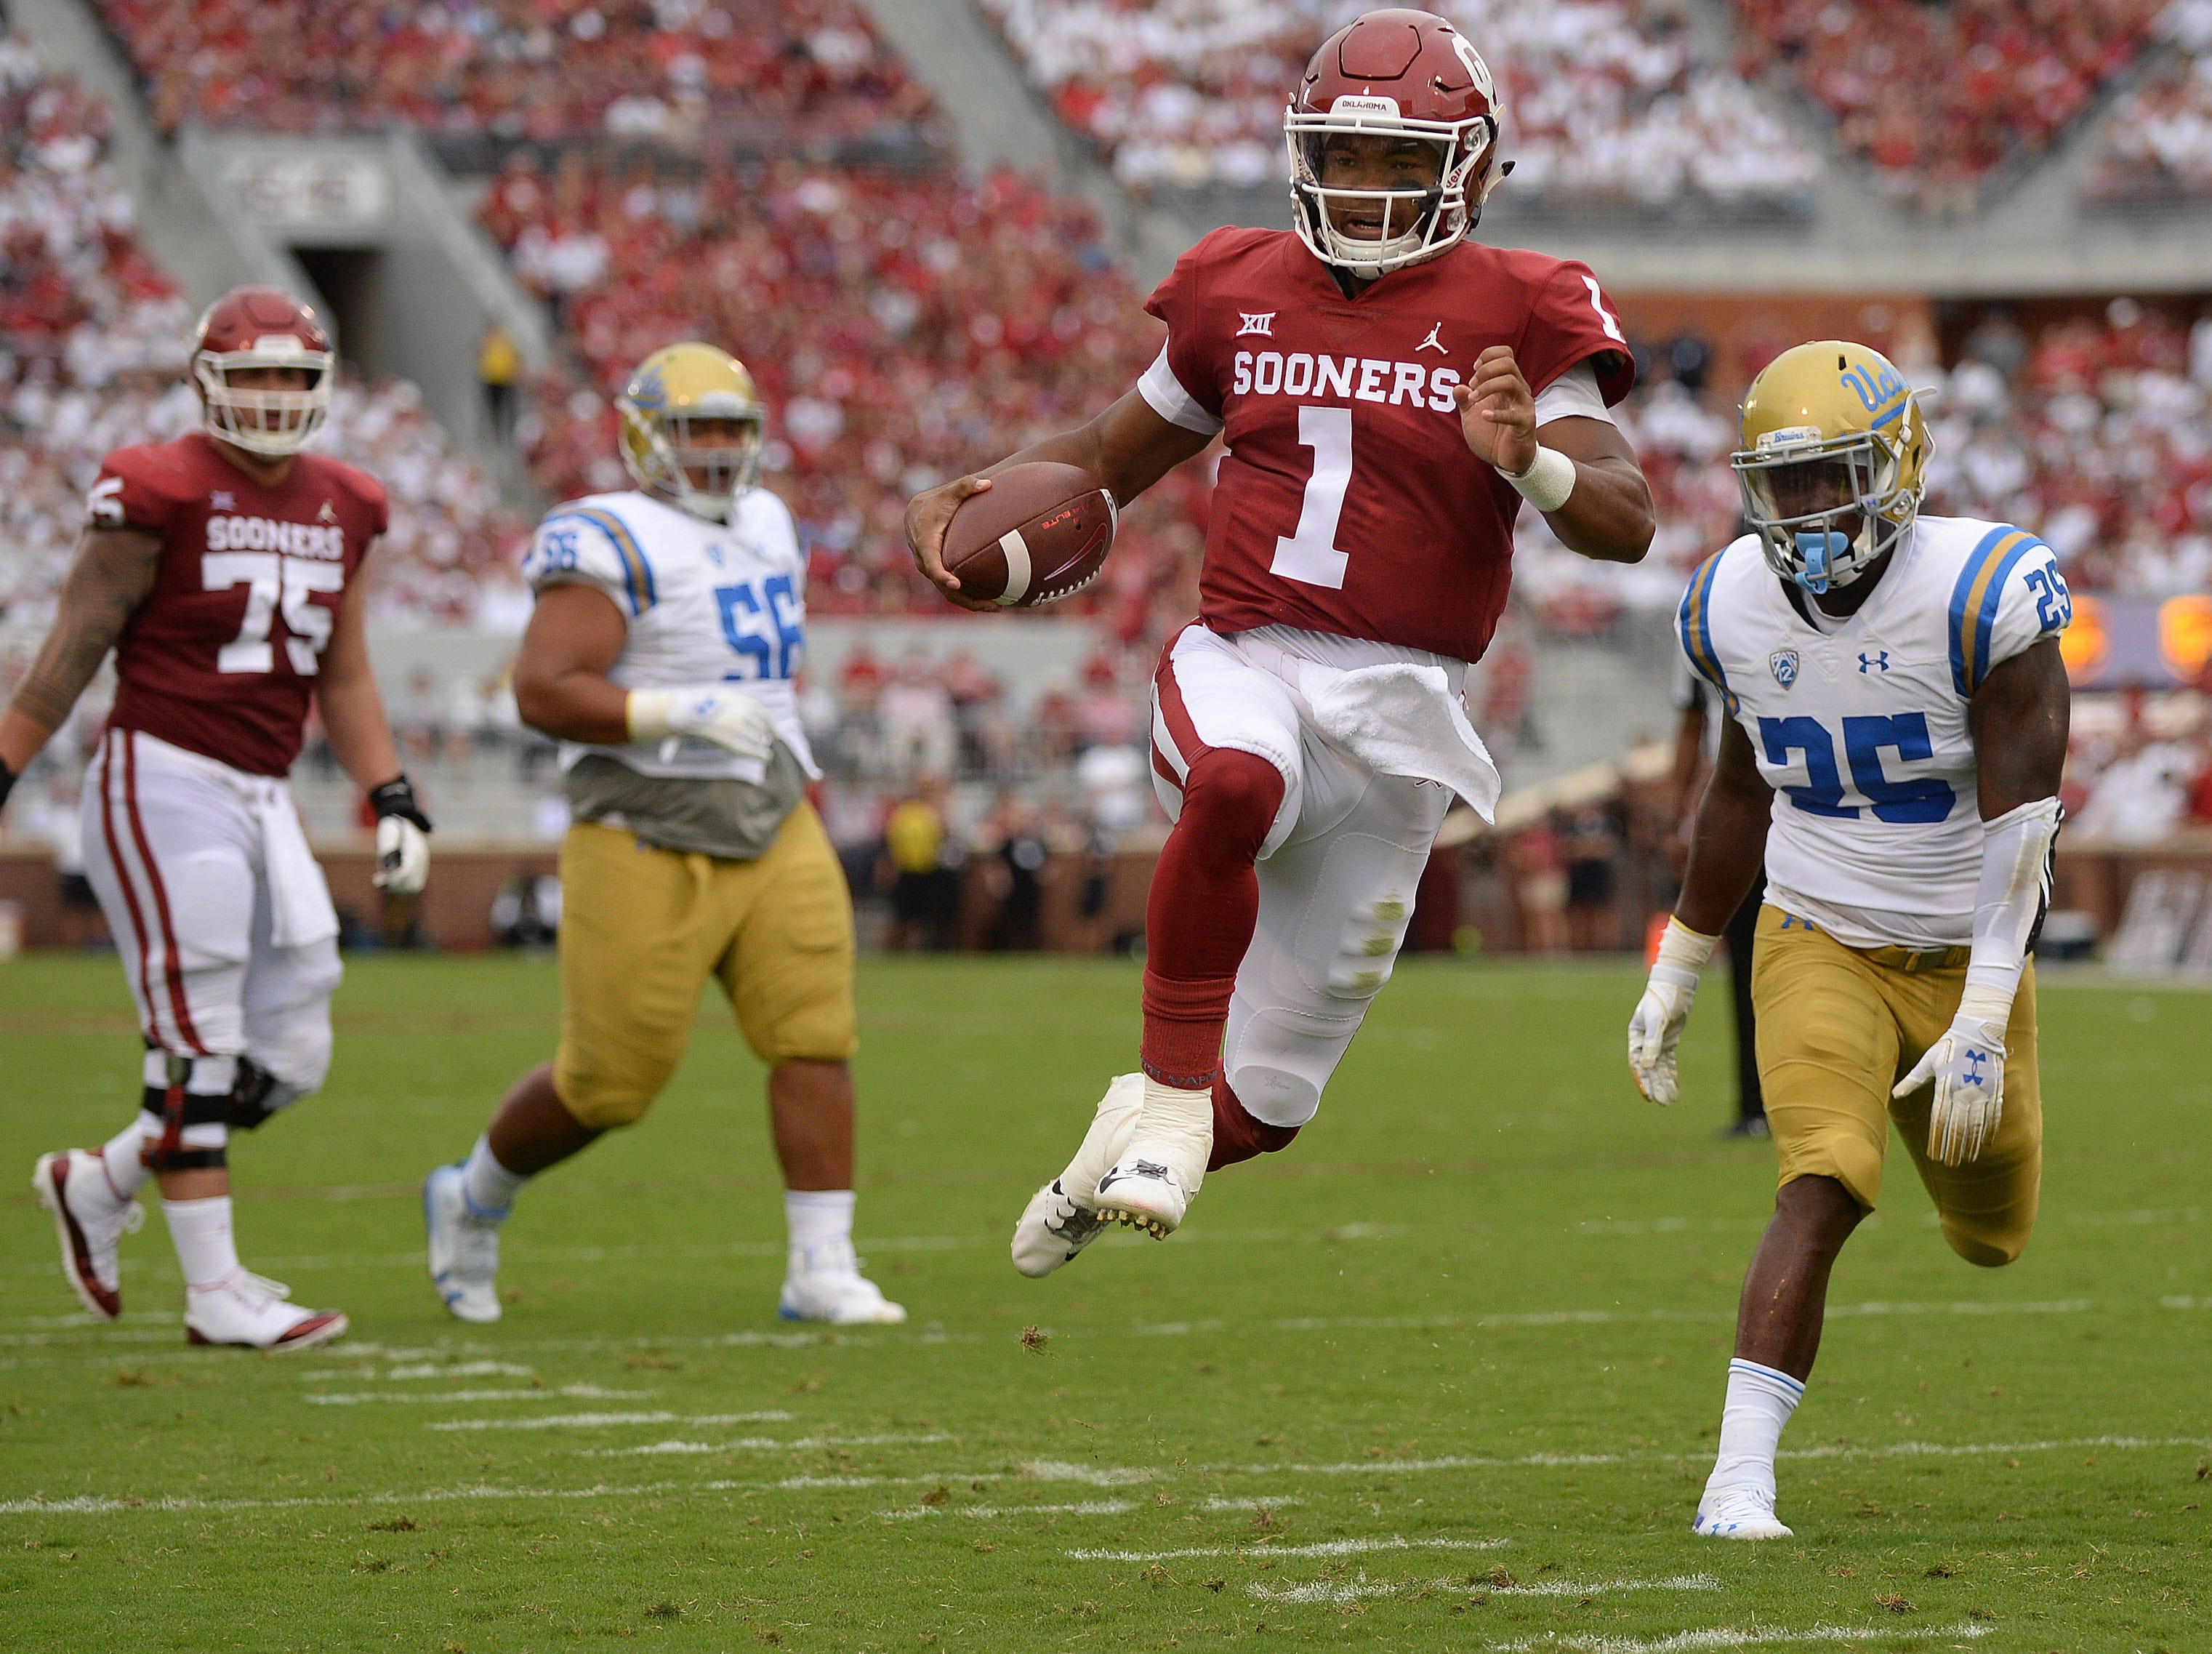 Oklahoma Sooners quarterback Kyler Murray (1) runs for a touchdown against the UCLA Bruins during the second quarter at Gaylord Family - Oklahoma Memorial Stadium.